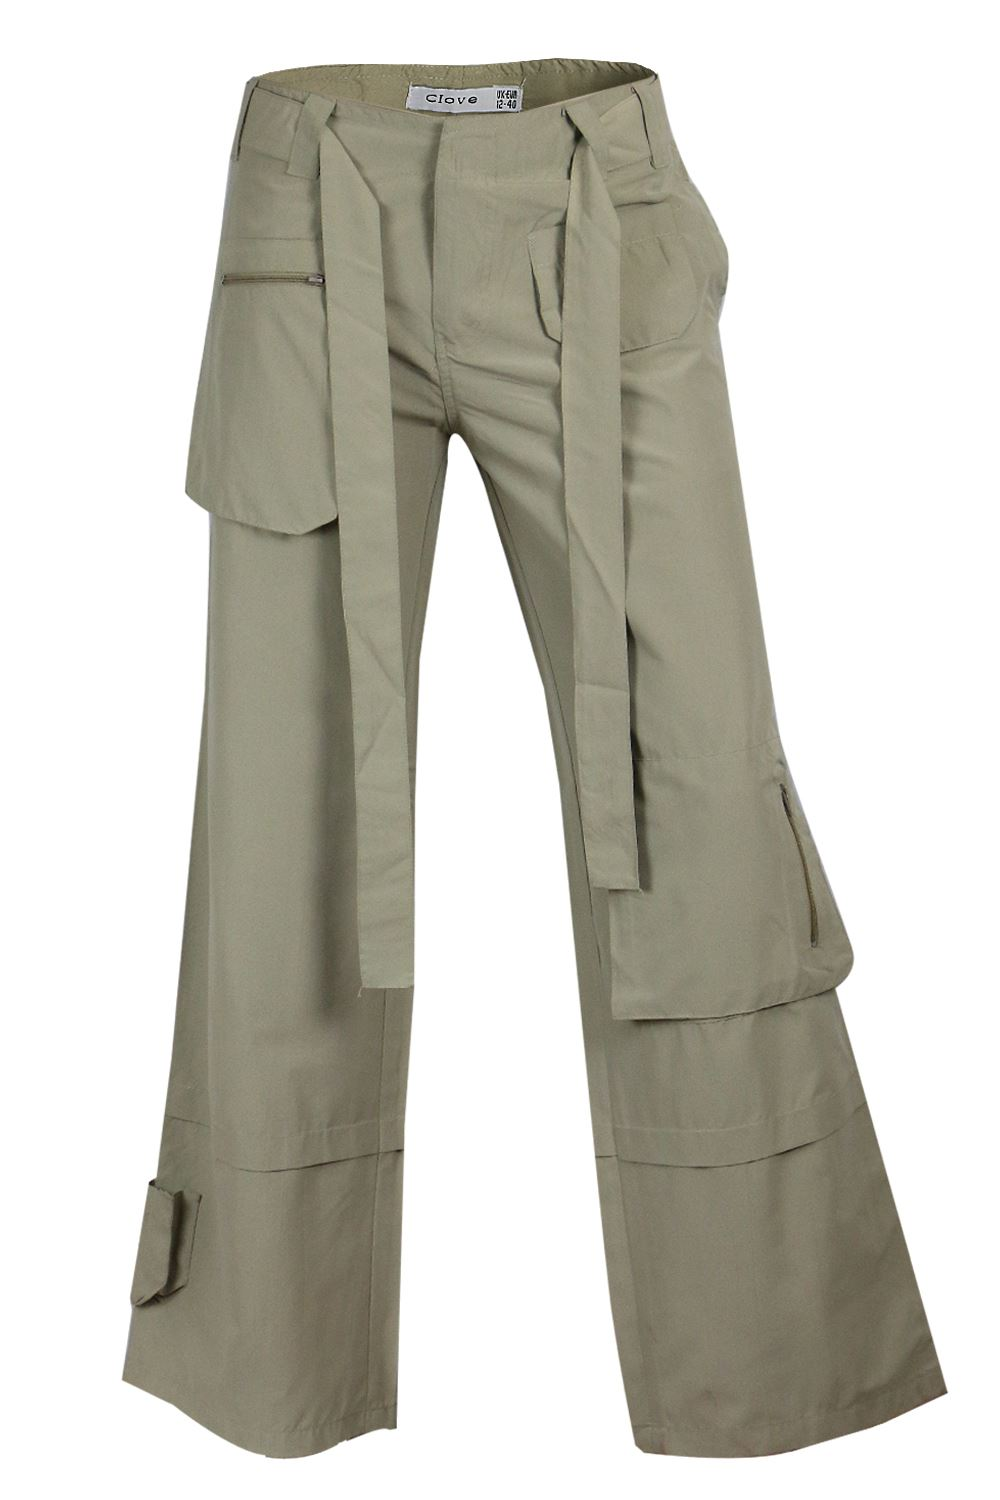 Enjoy free shipping and easy returns every day at Kohl's. Find great deals on Mens Utility Pants at Kohl's today!